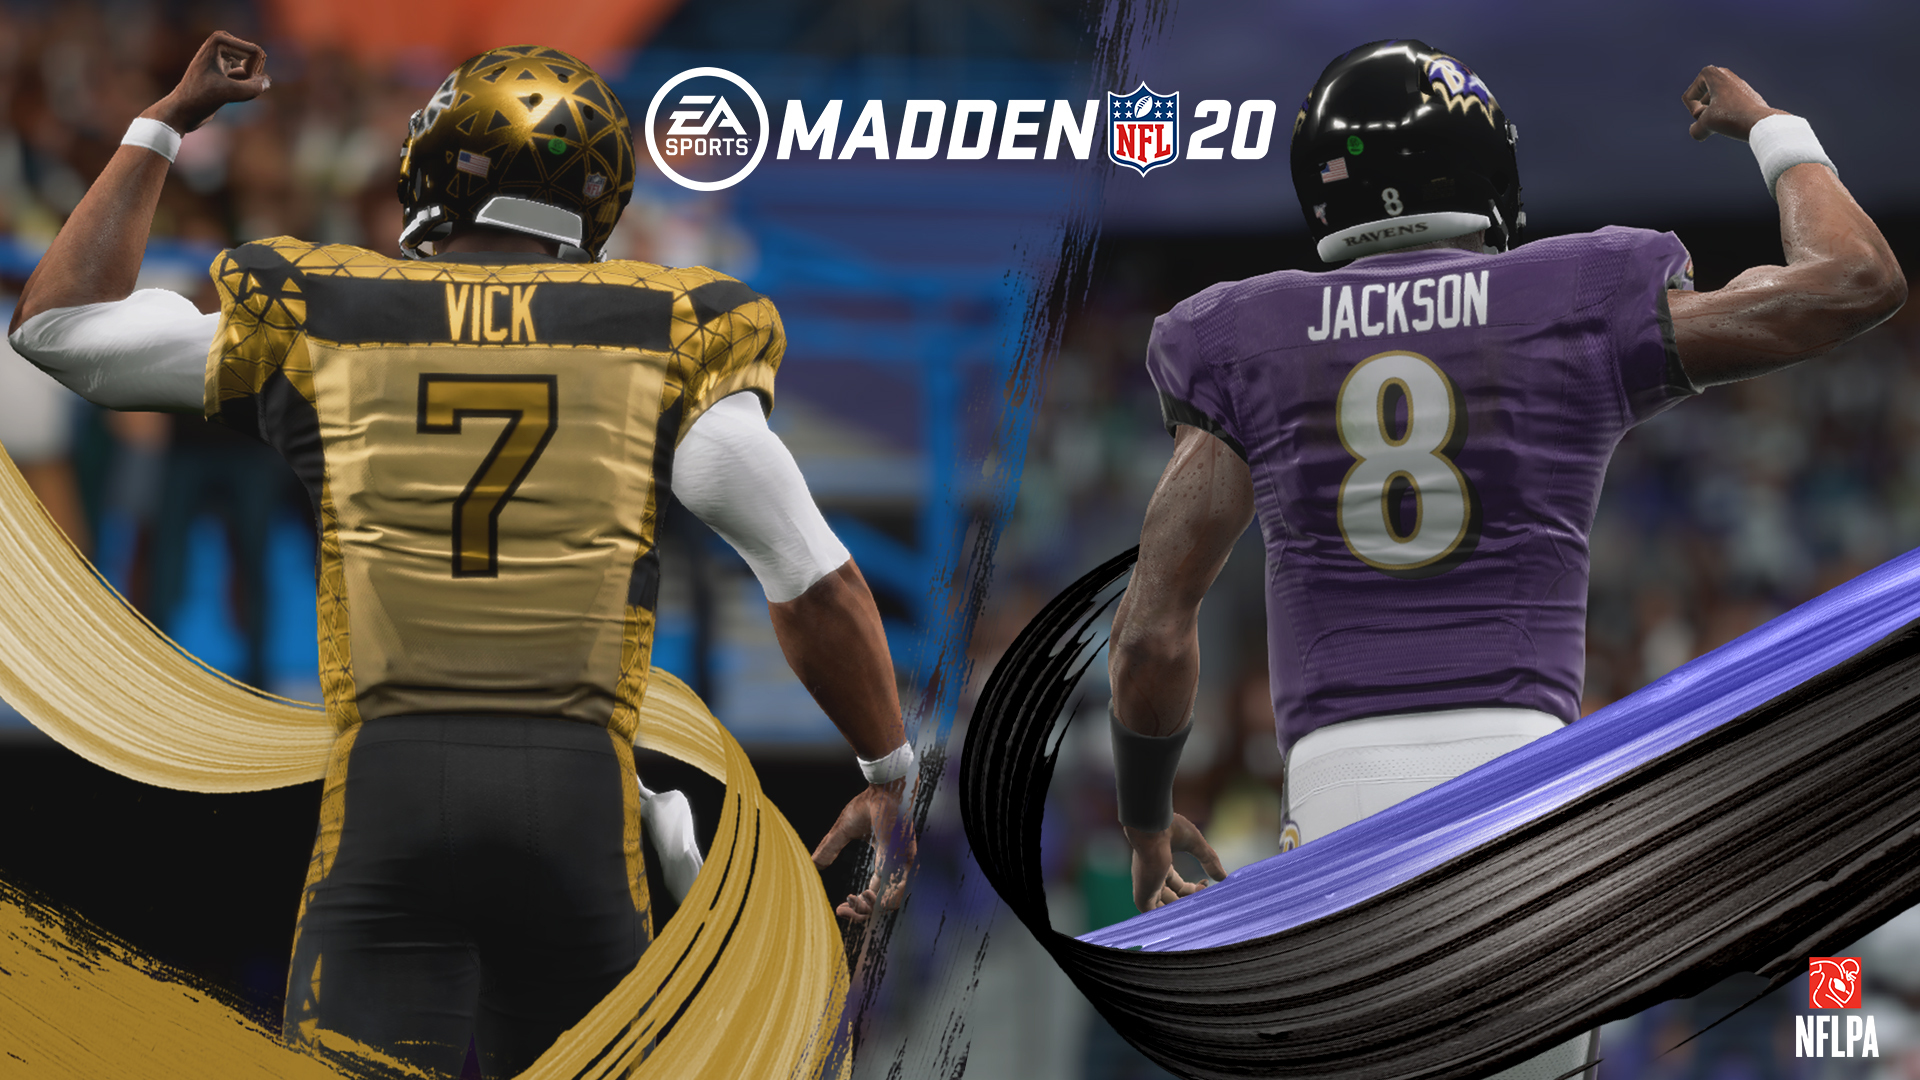 EA SPORTS Madden NFL 20 Welcomes the Most Players Ever Recorded 1920x1080